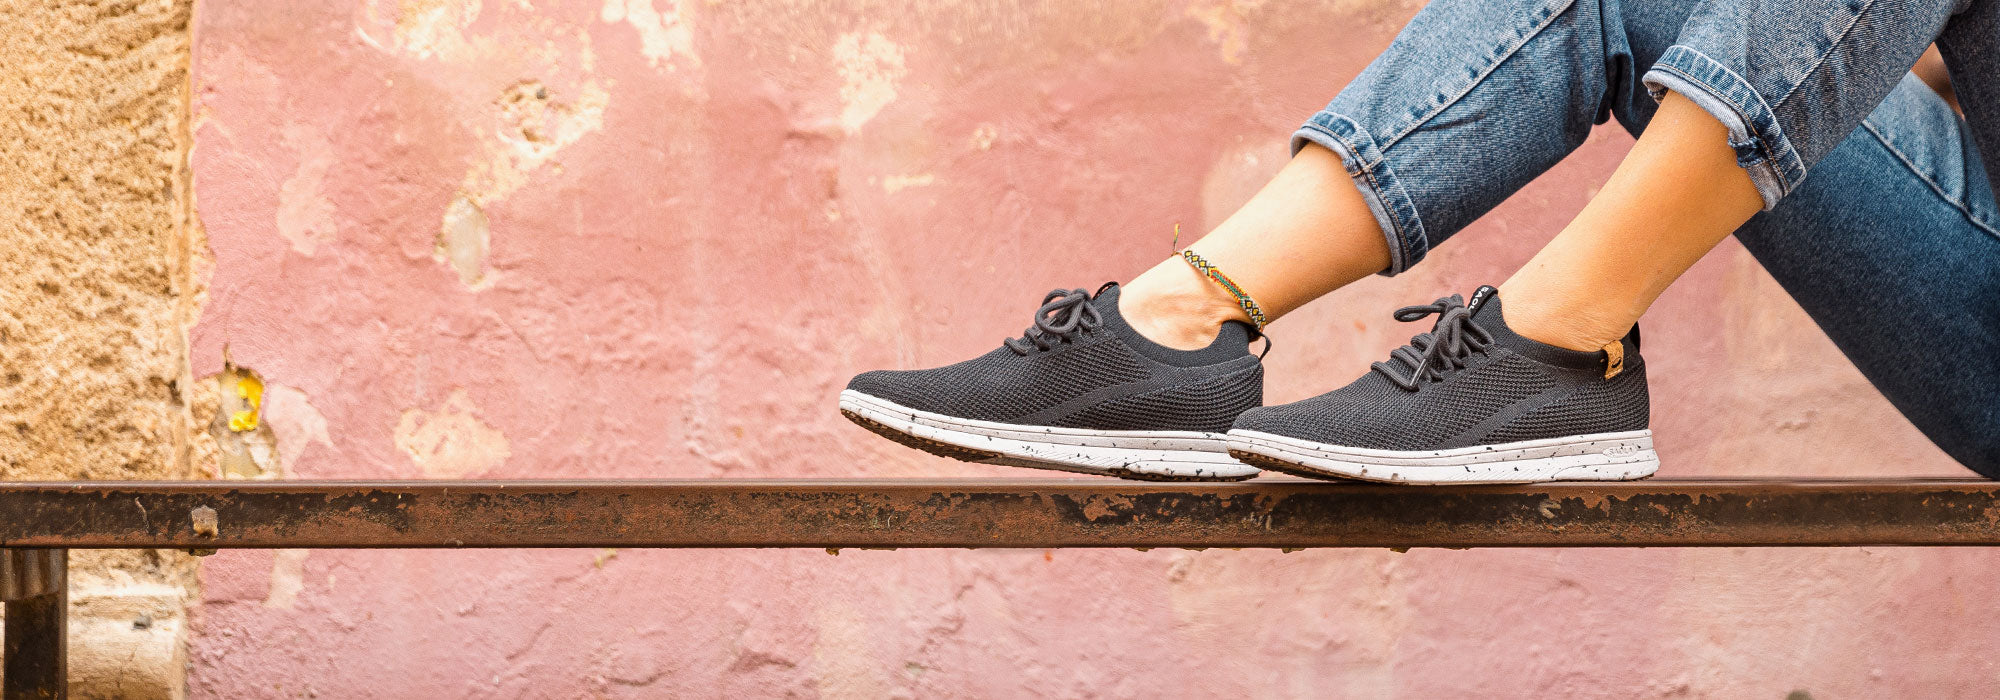 saola-shoes-women-collection-vegan